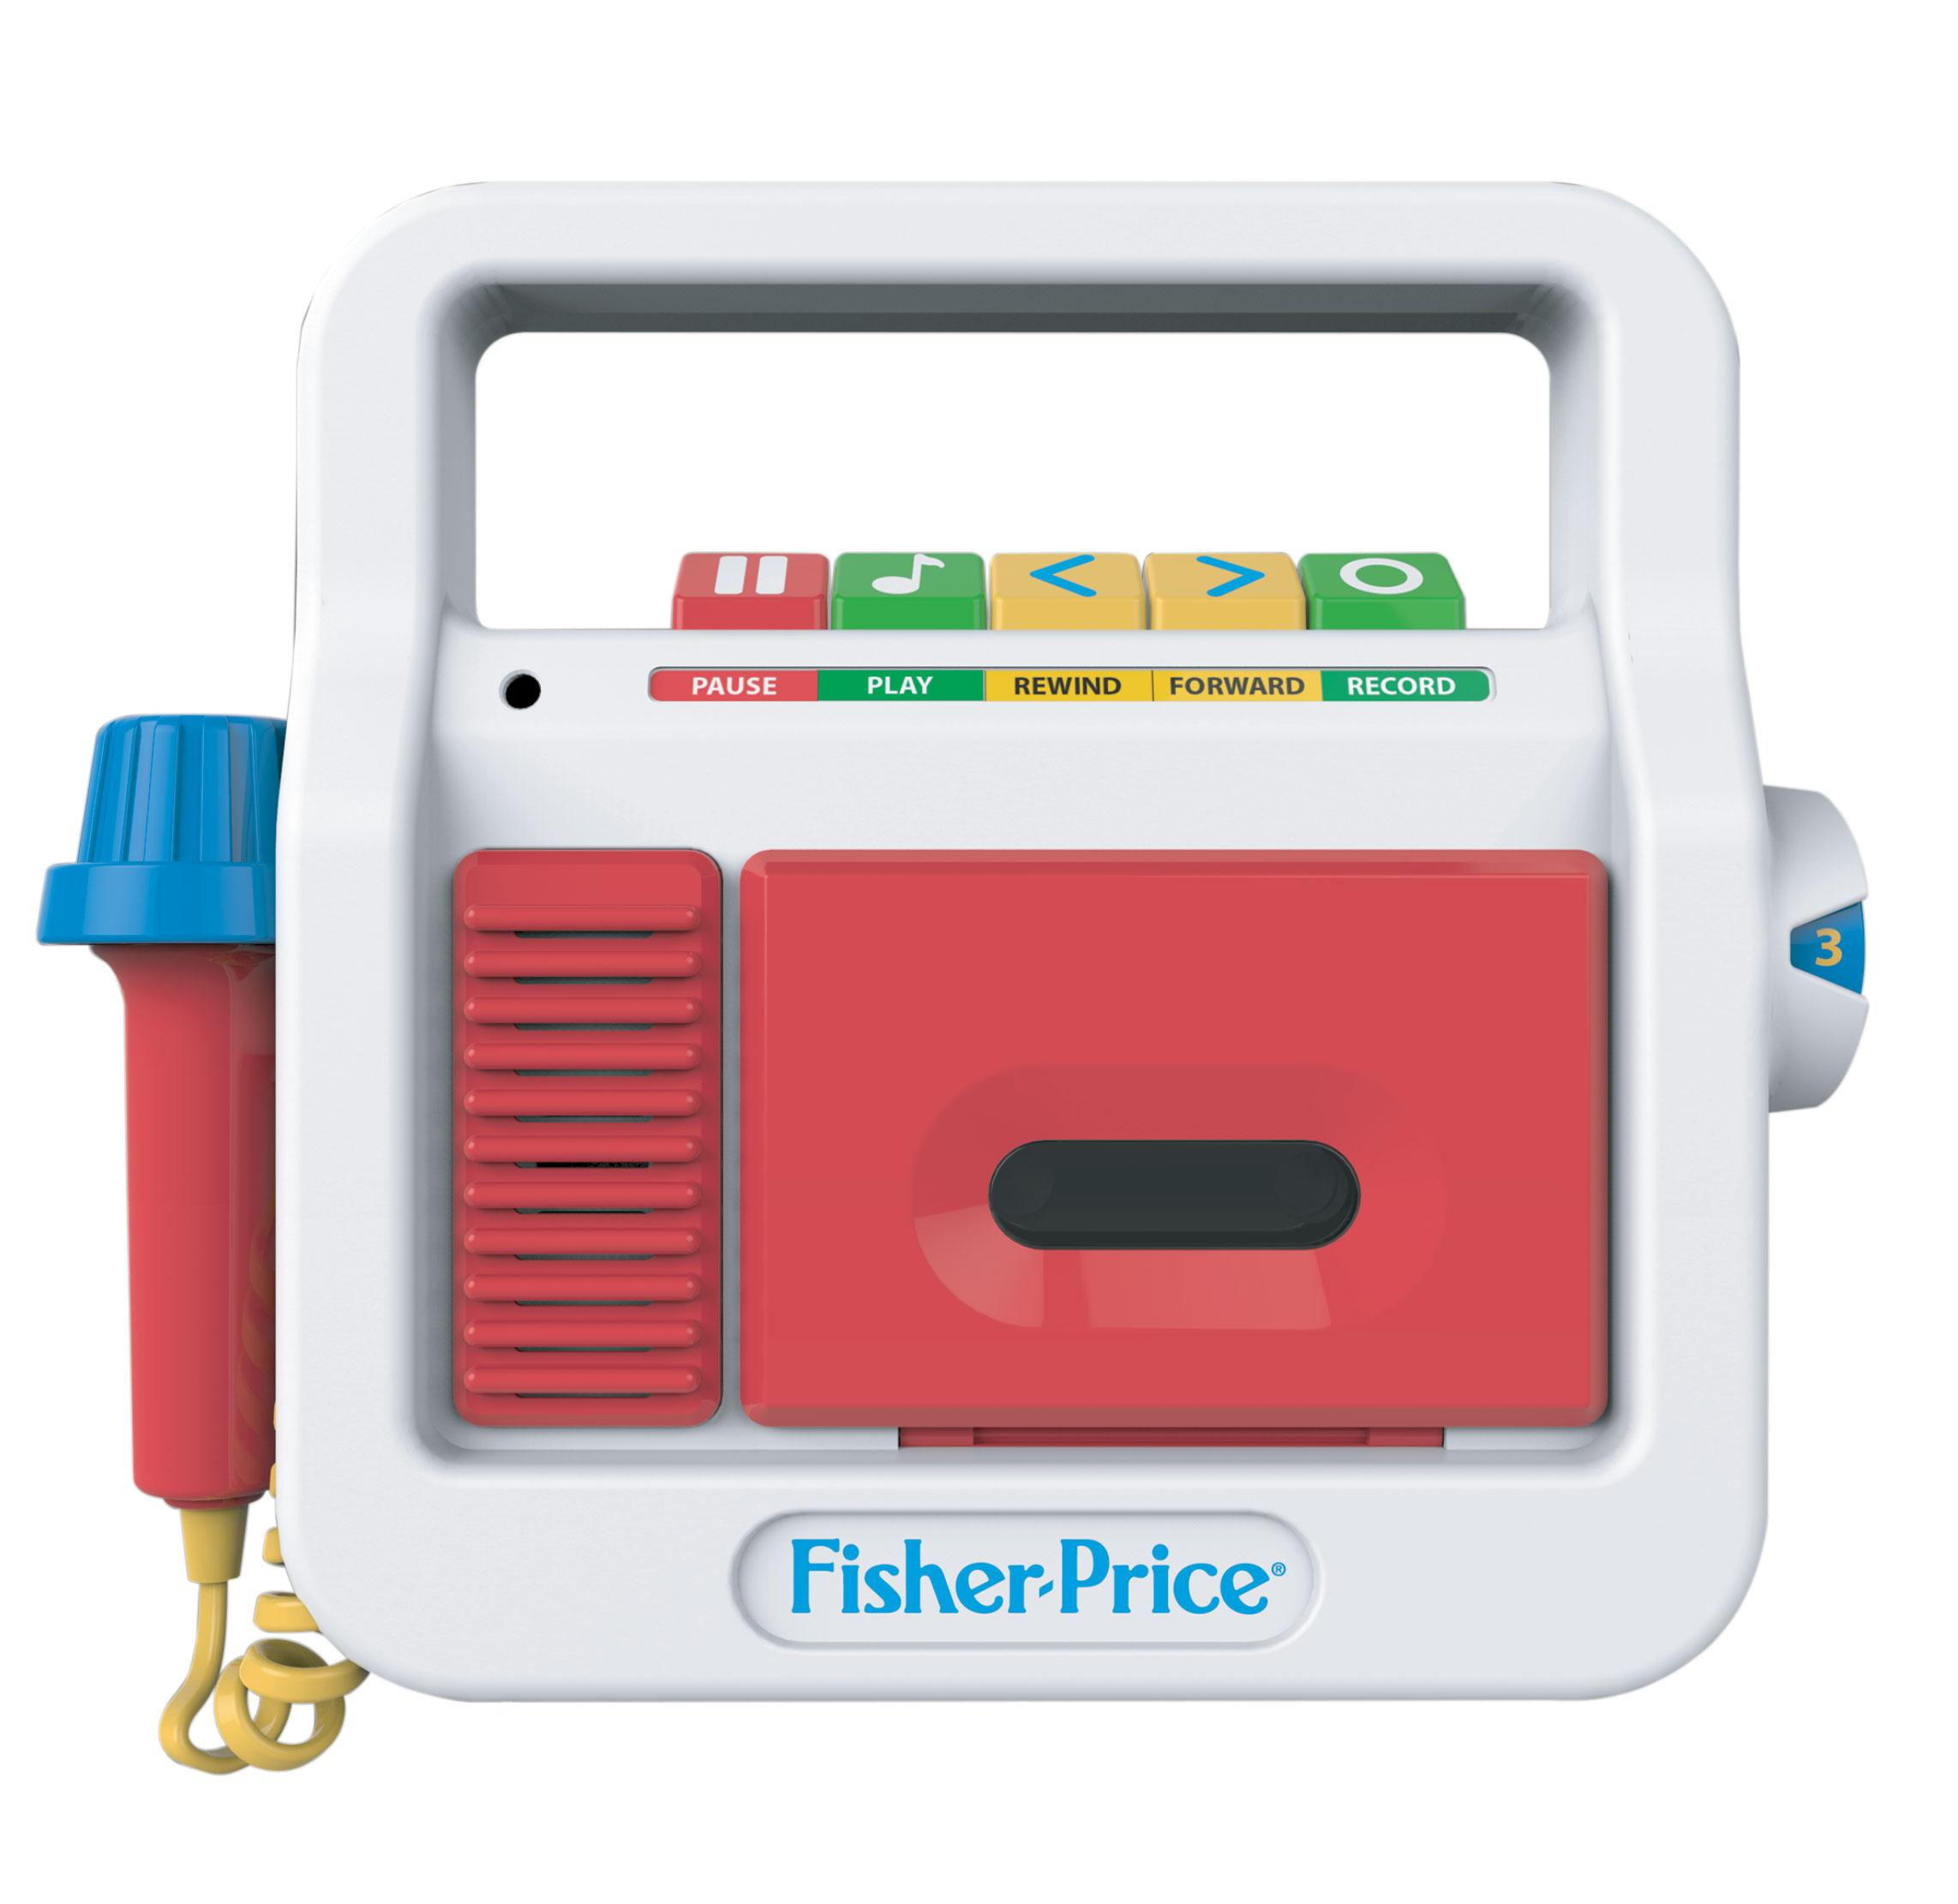 Fisher Price Classics Play Tape Recorder: Amazon.ca: Toys & Games